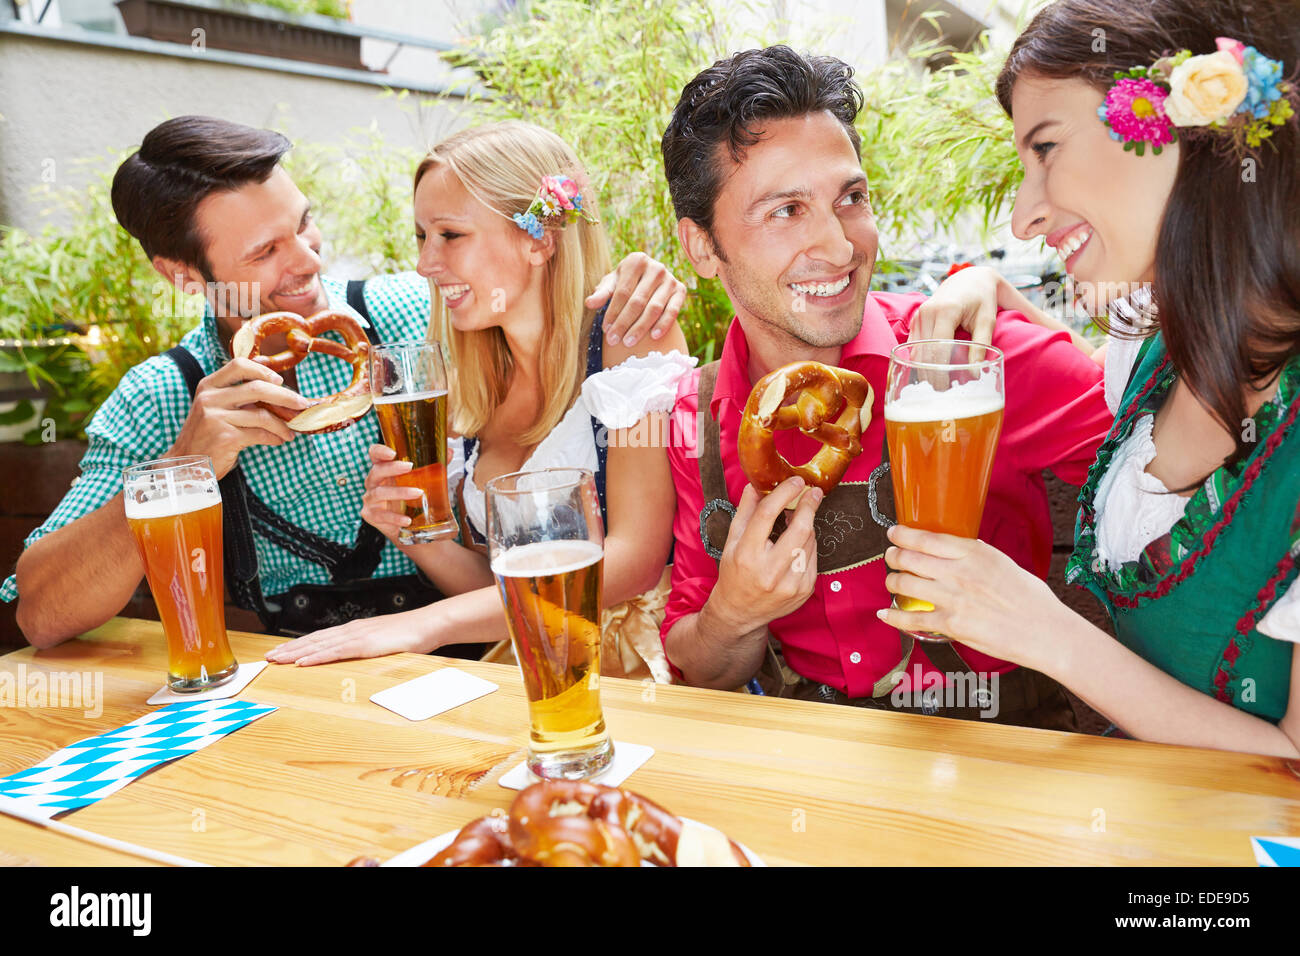 Men and women flirting in bavarian beer garden in summer - Stock Image